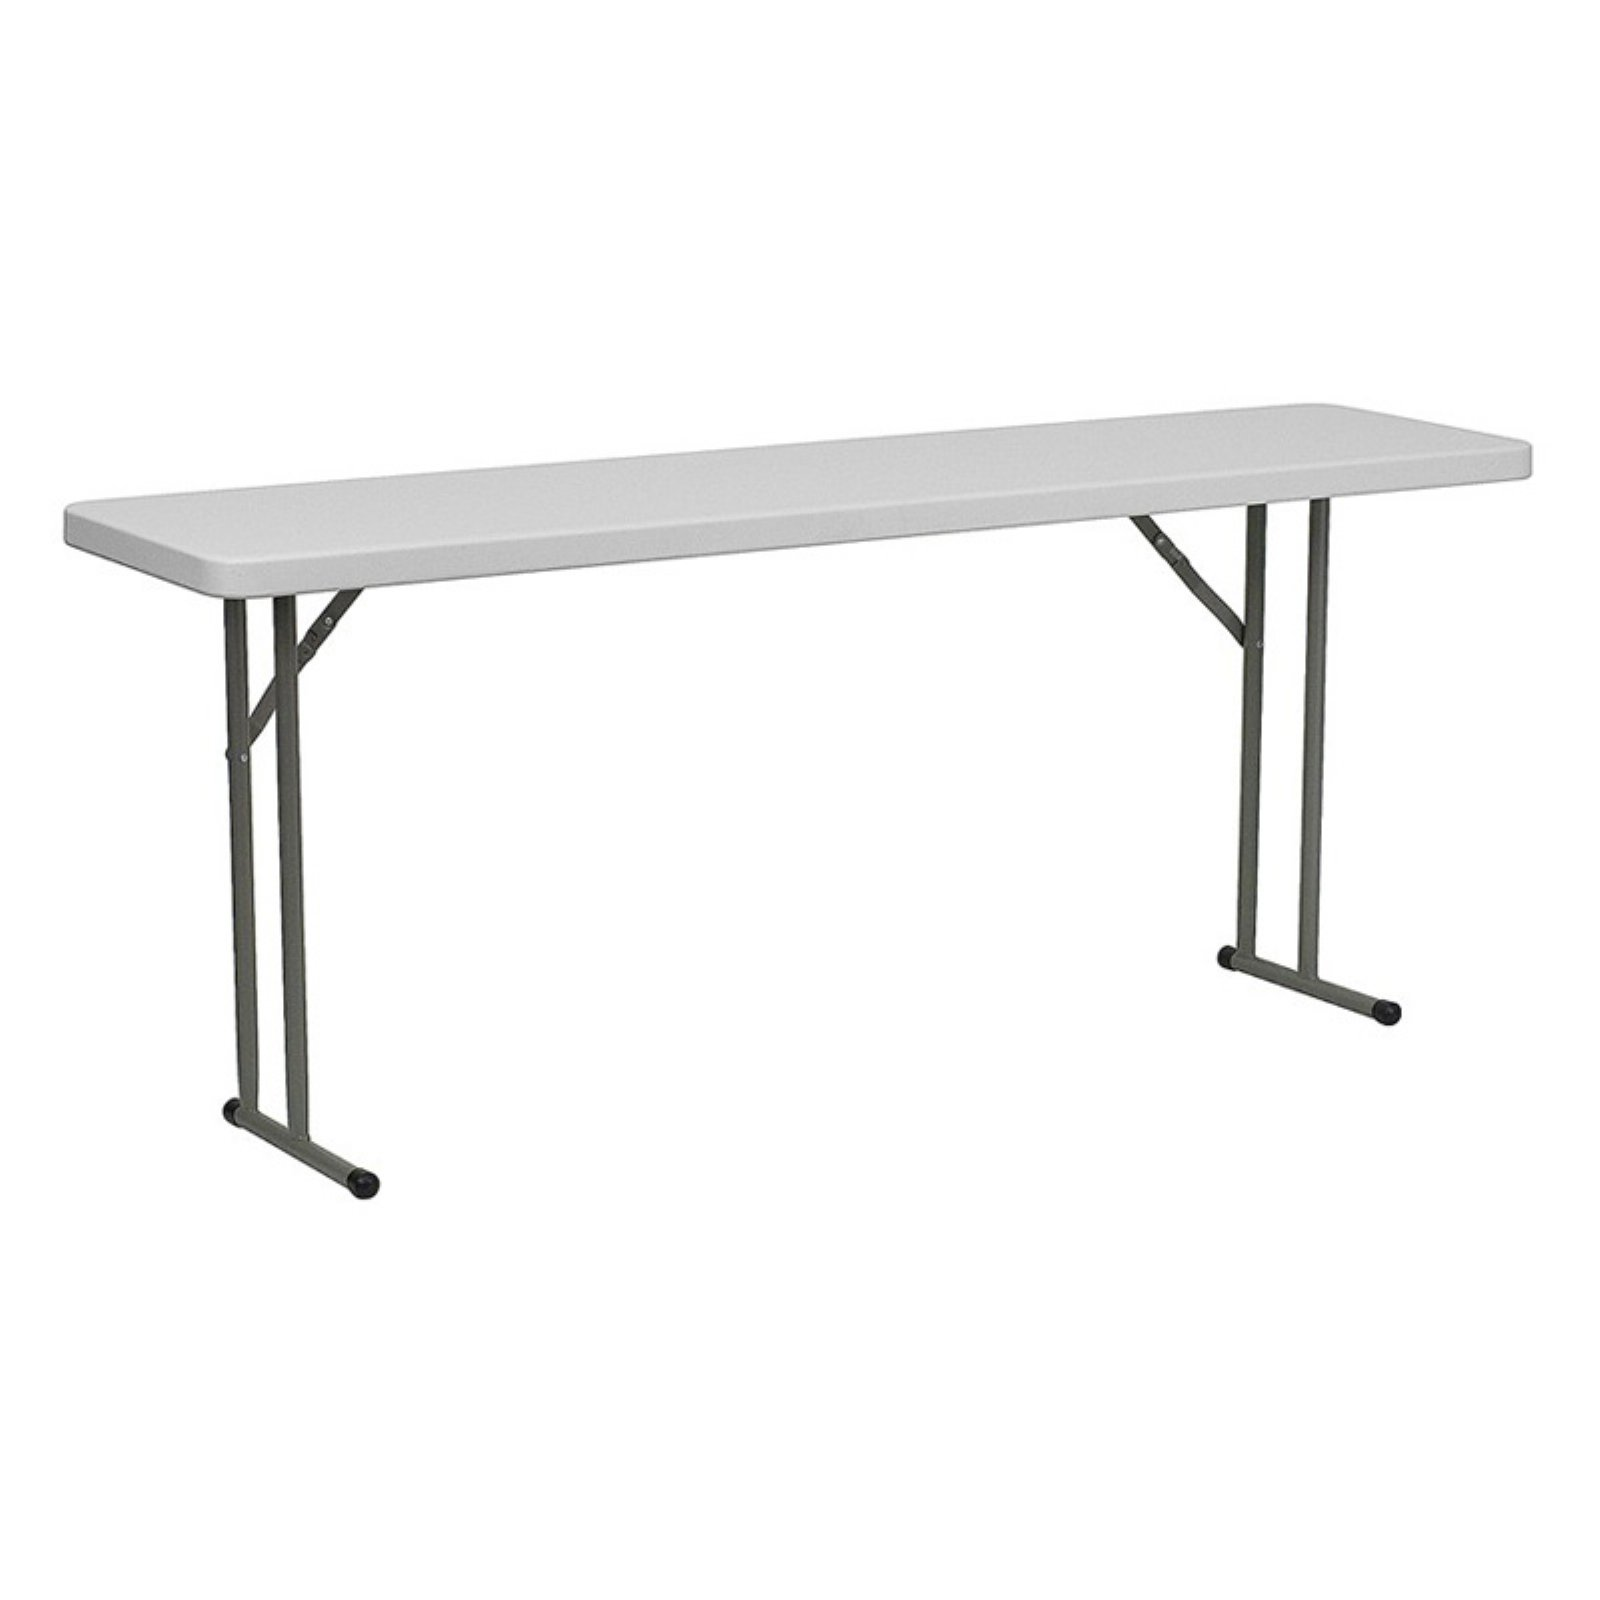 "Flash Furniture 18"" x 72"" Plastic Folding Table, White by Generic"